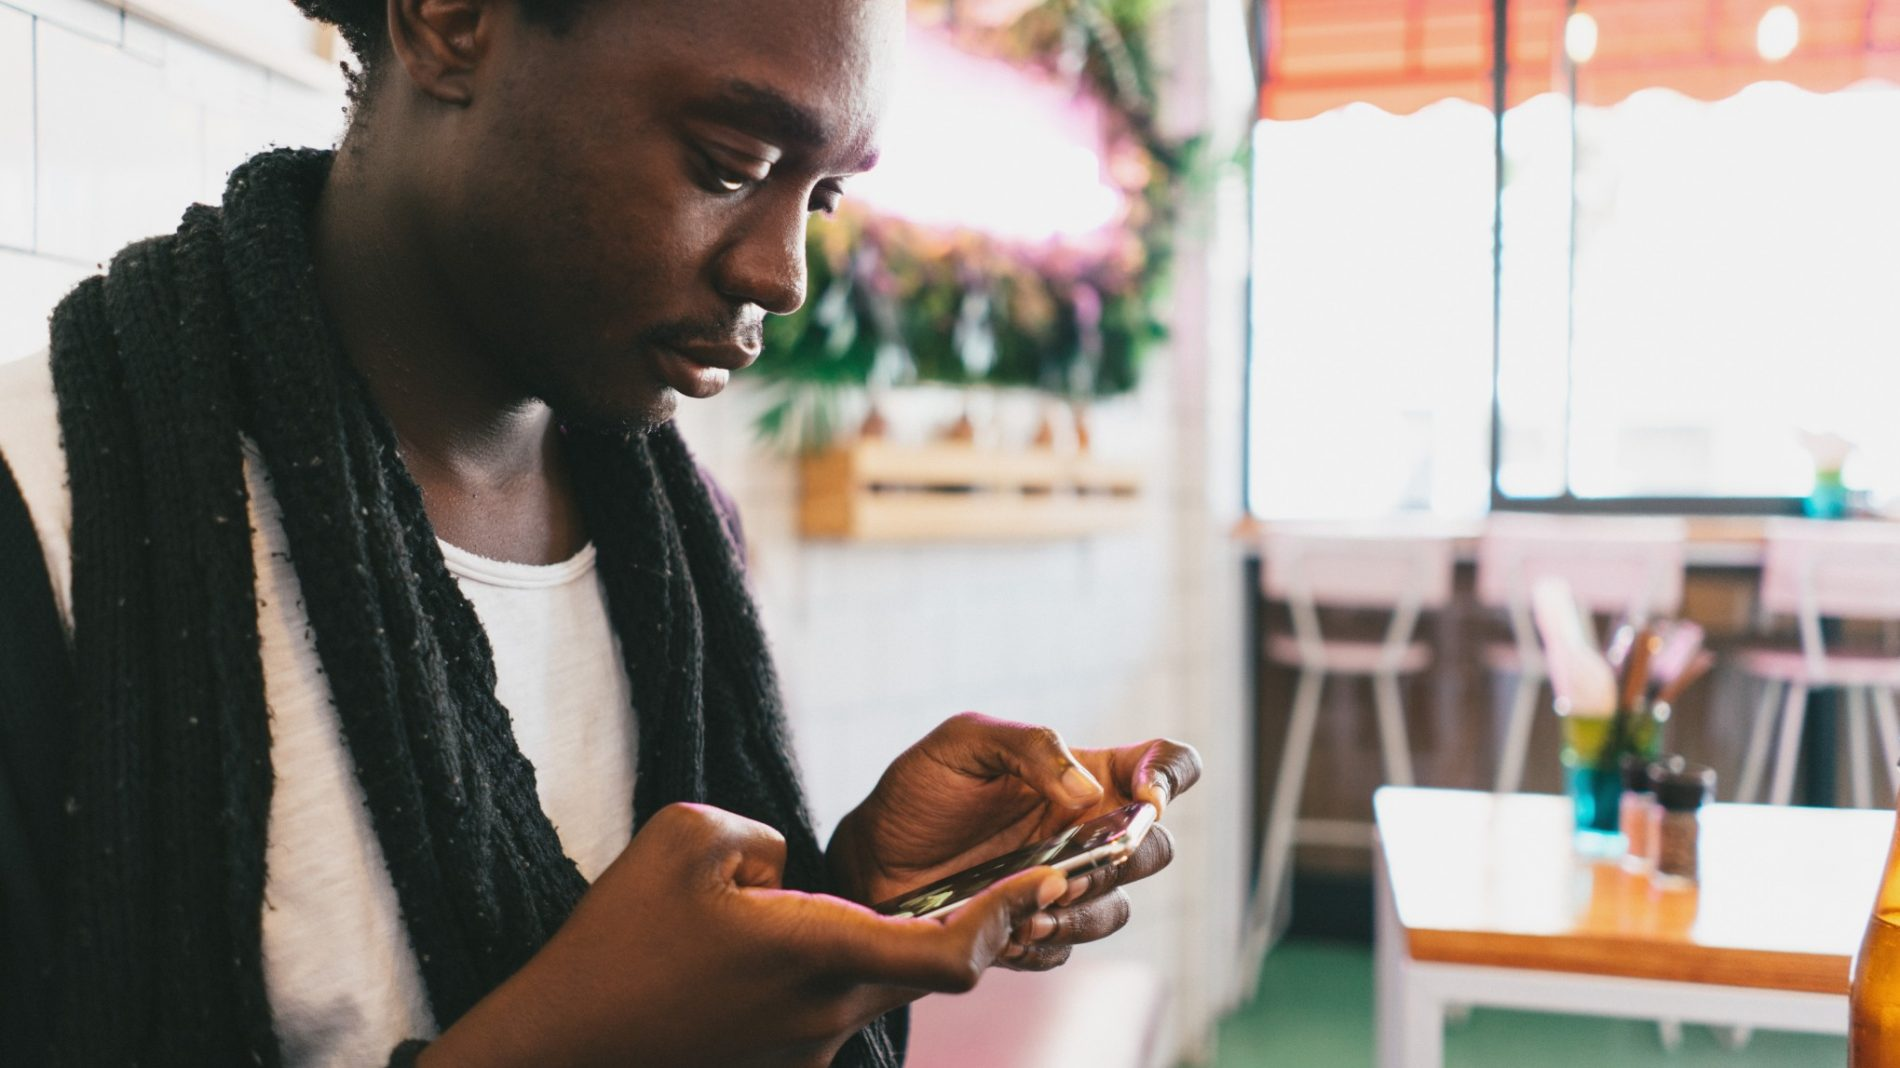 Young man deleting social media from their phone